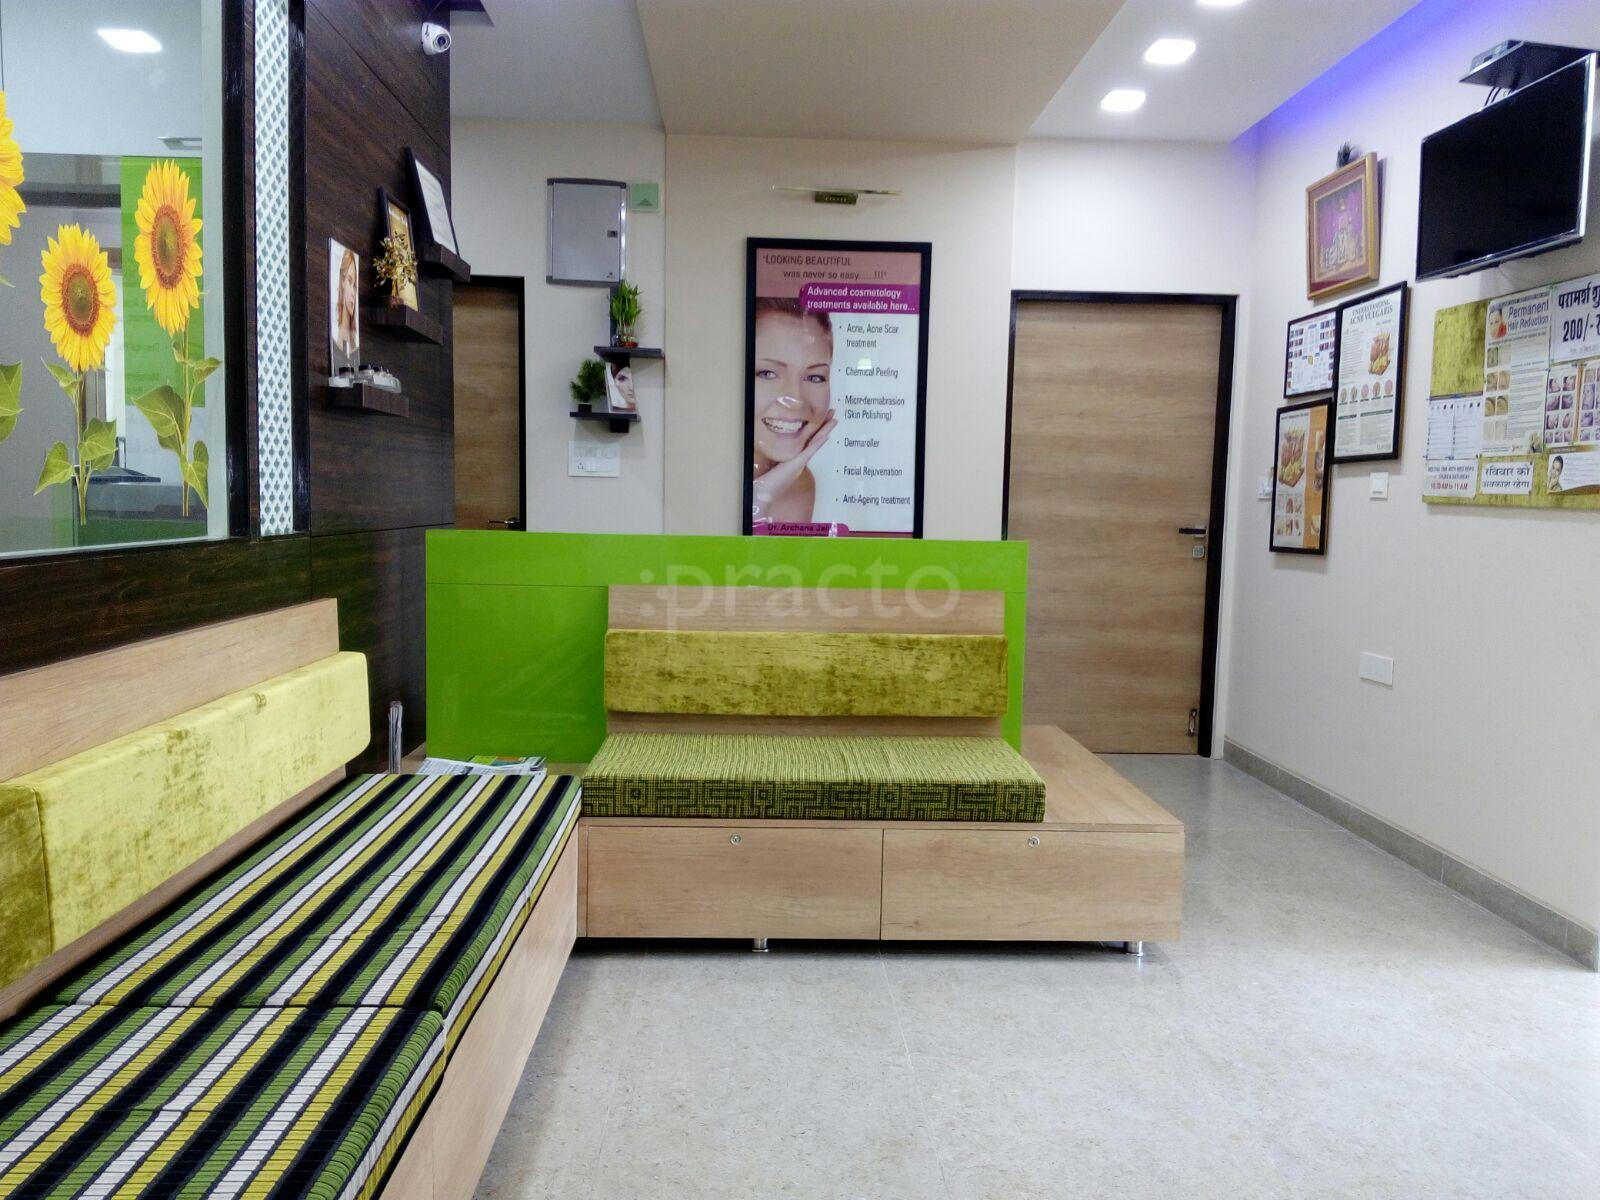 Dermatologists In Ladera, Jaipur - Instant Appointment